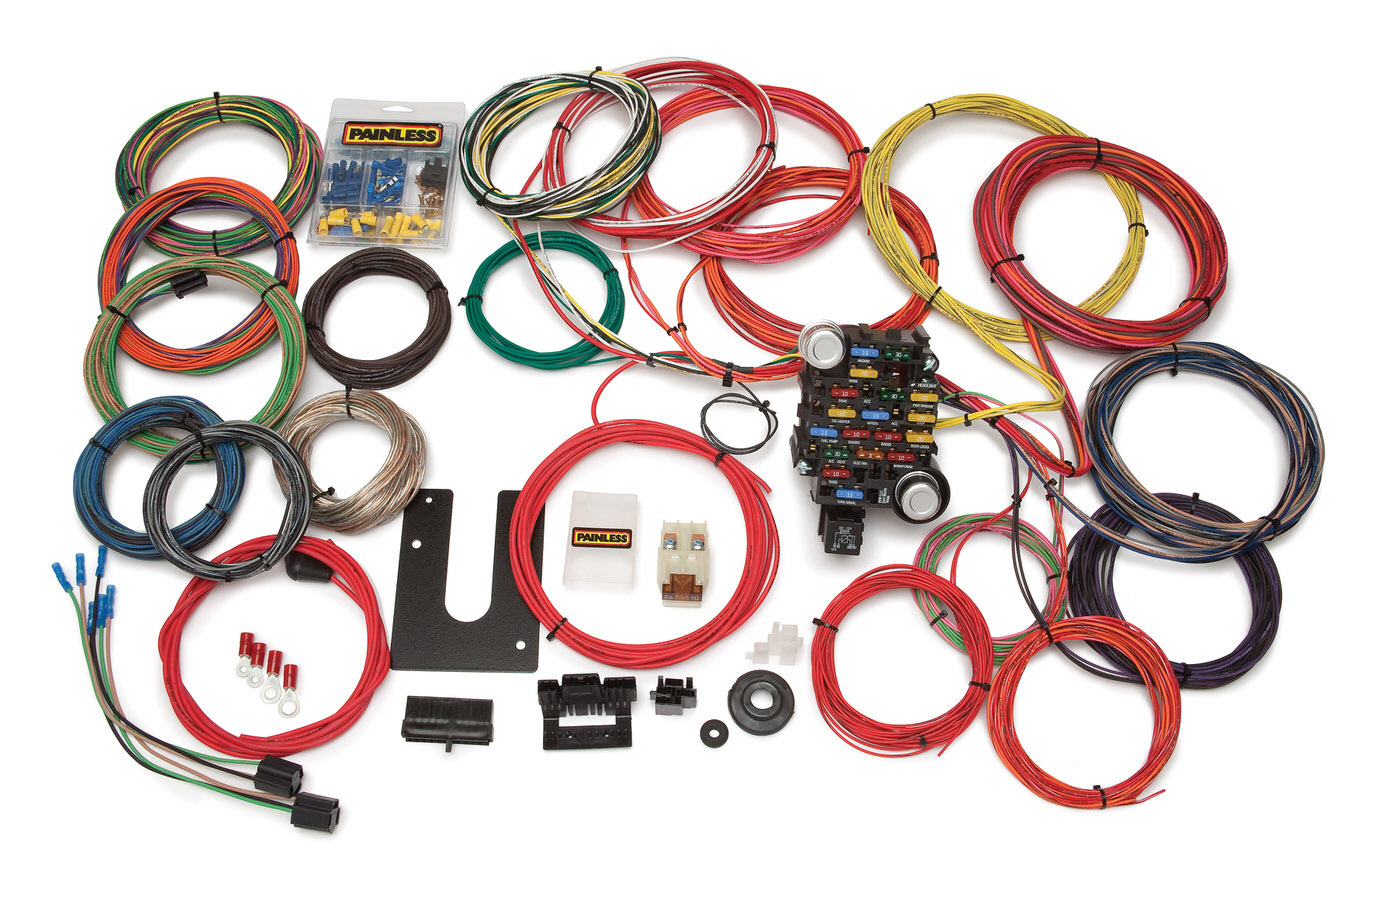 Painless Wiring 10220 Car Wiring Harness, Classic-Plus Customizable Trunk Mount, Complete, 28 Circuit, Universal, Kit